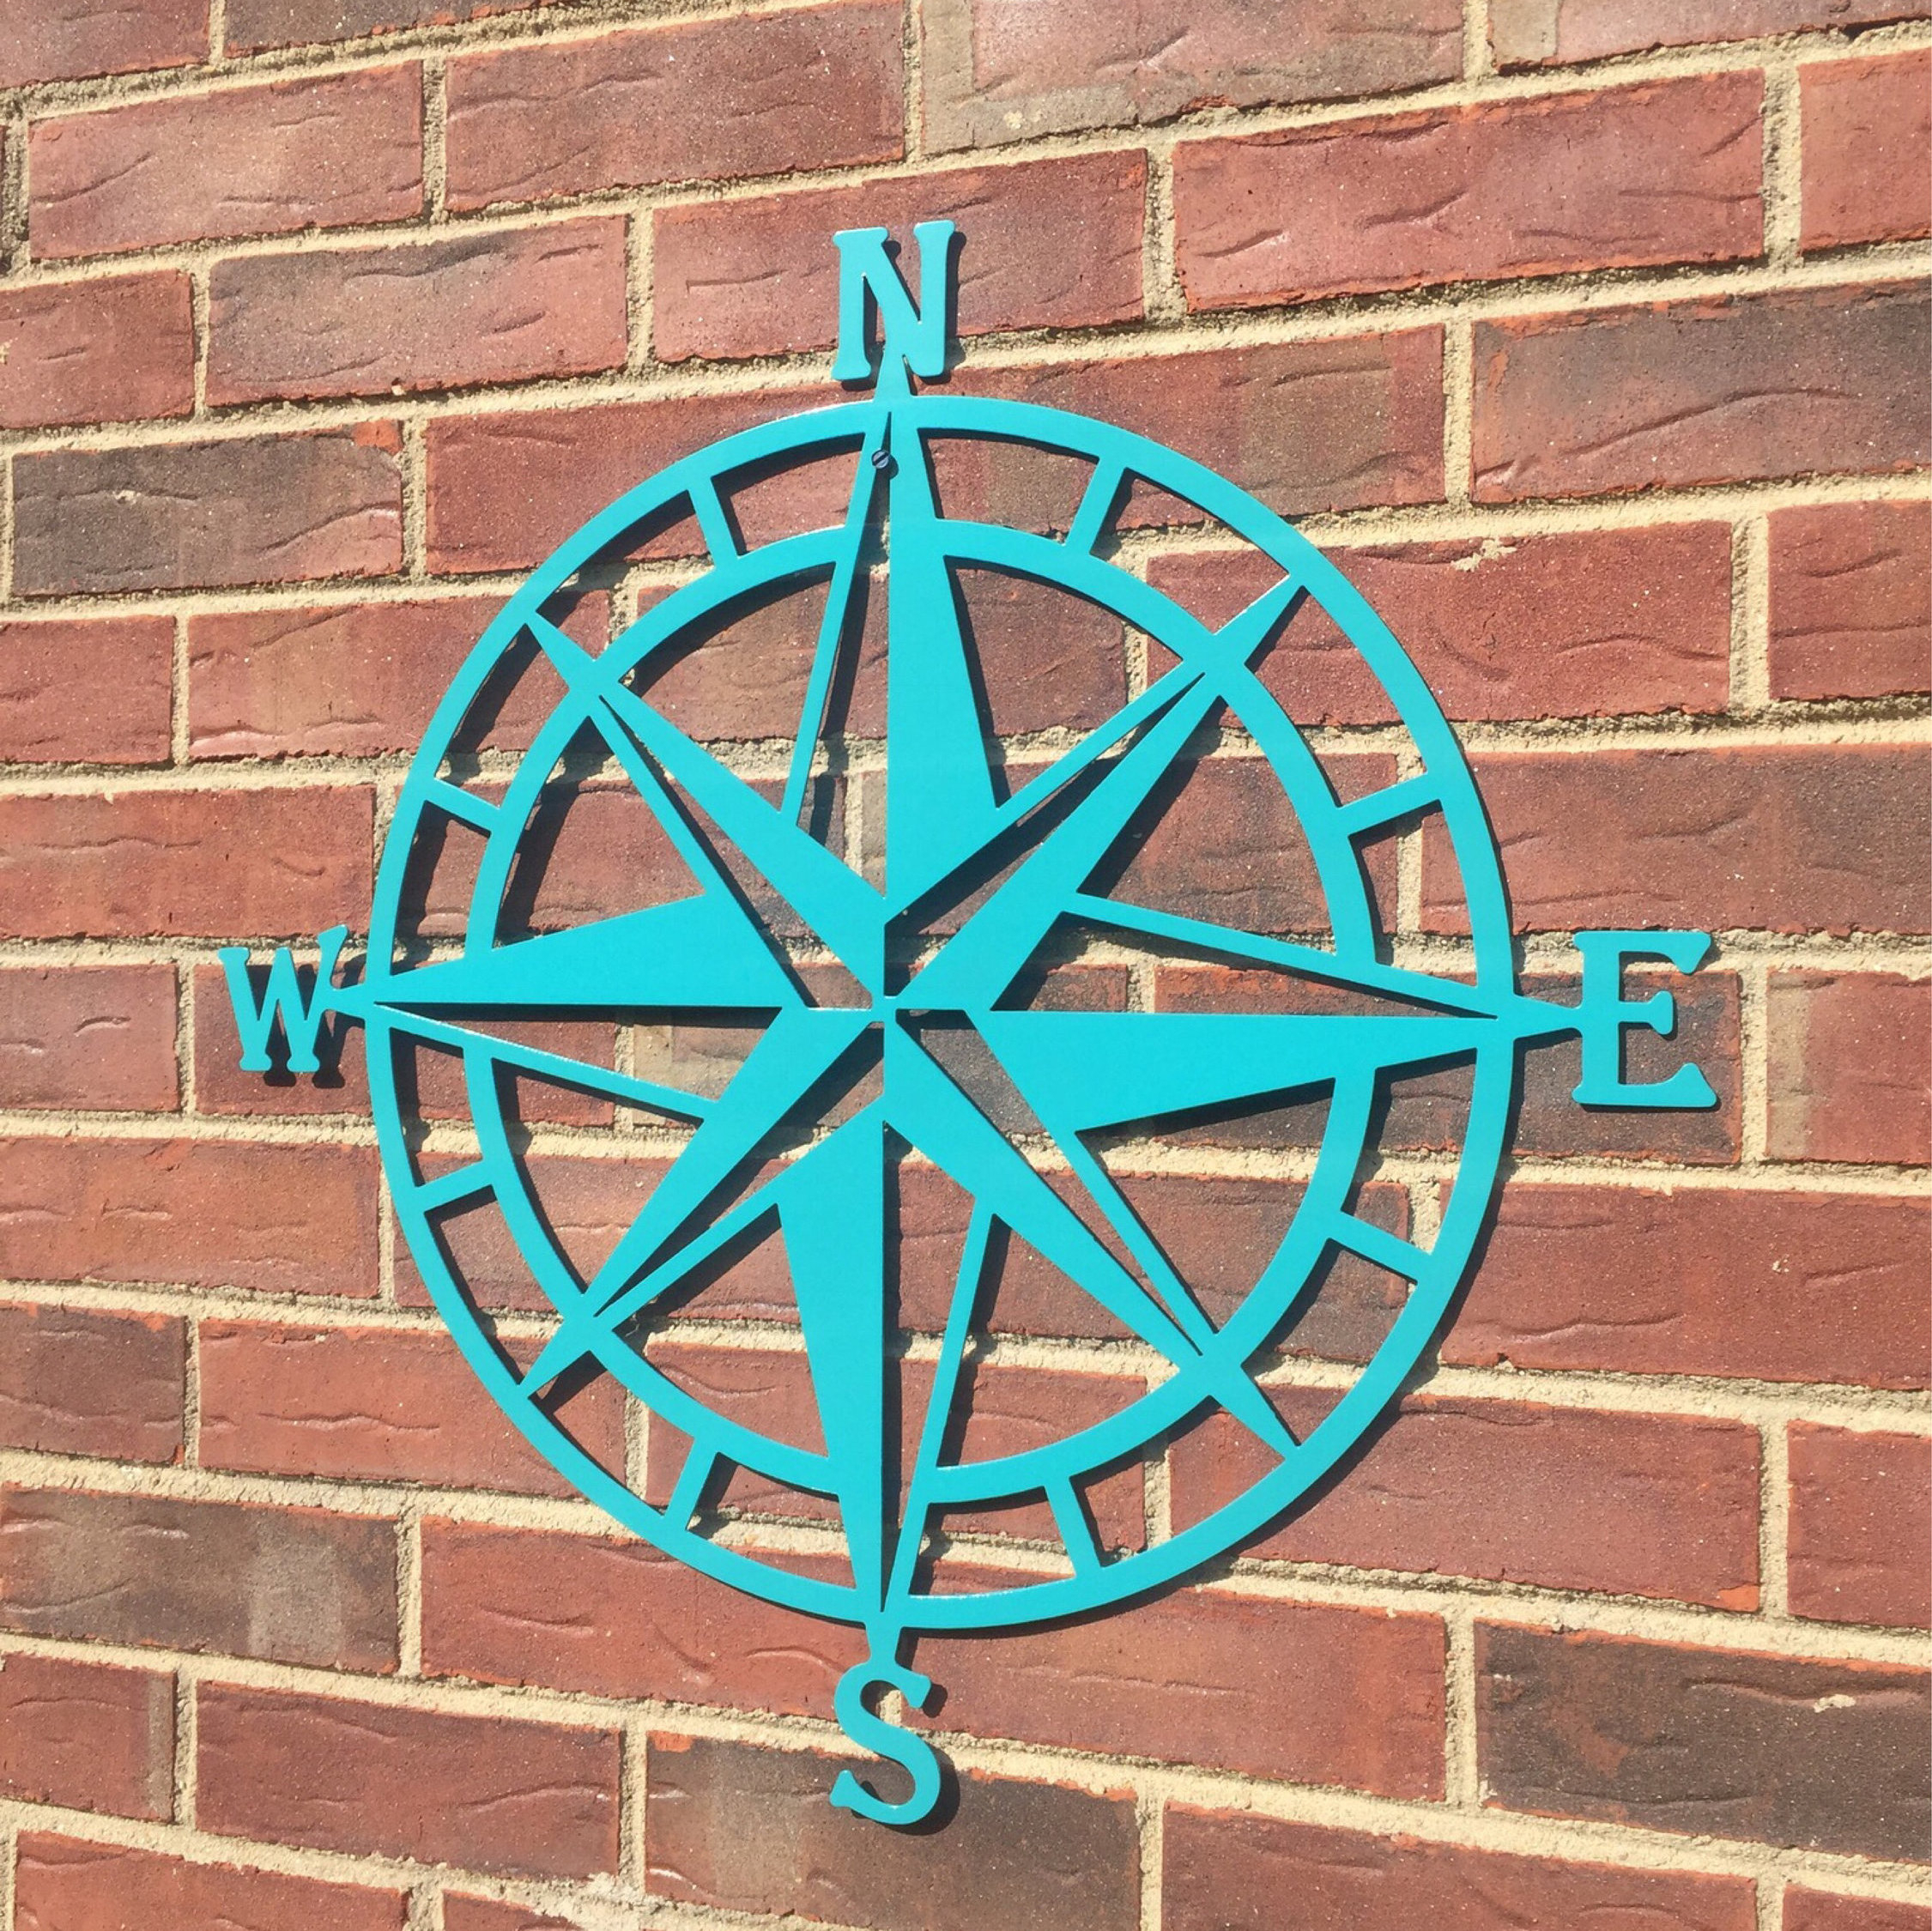 Steel Nautical Star Compass Wall Art, Nautical Decor, Metal Wall Art, Lake  House Decor, Beach House Decor, Outdoor Metal Wall Art in Outdoor Metal Wall Compass (Image 29 of 30)